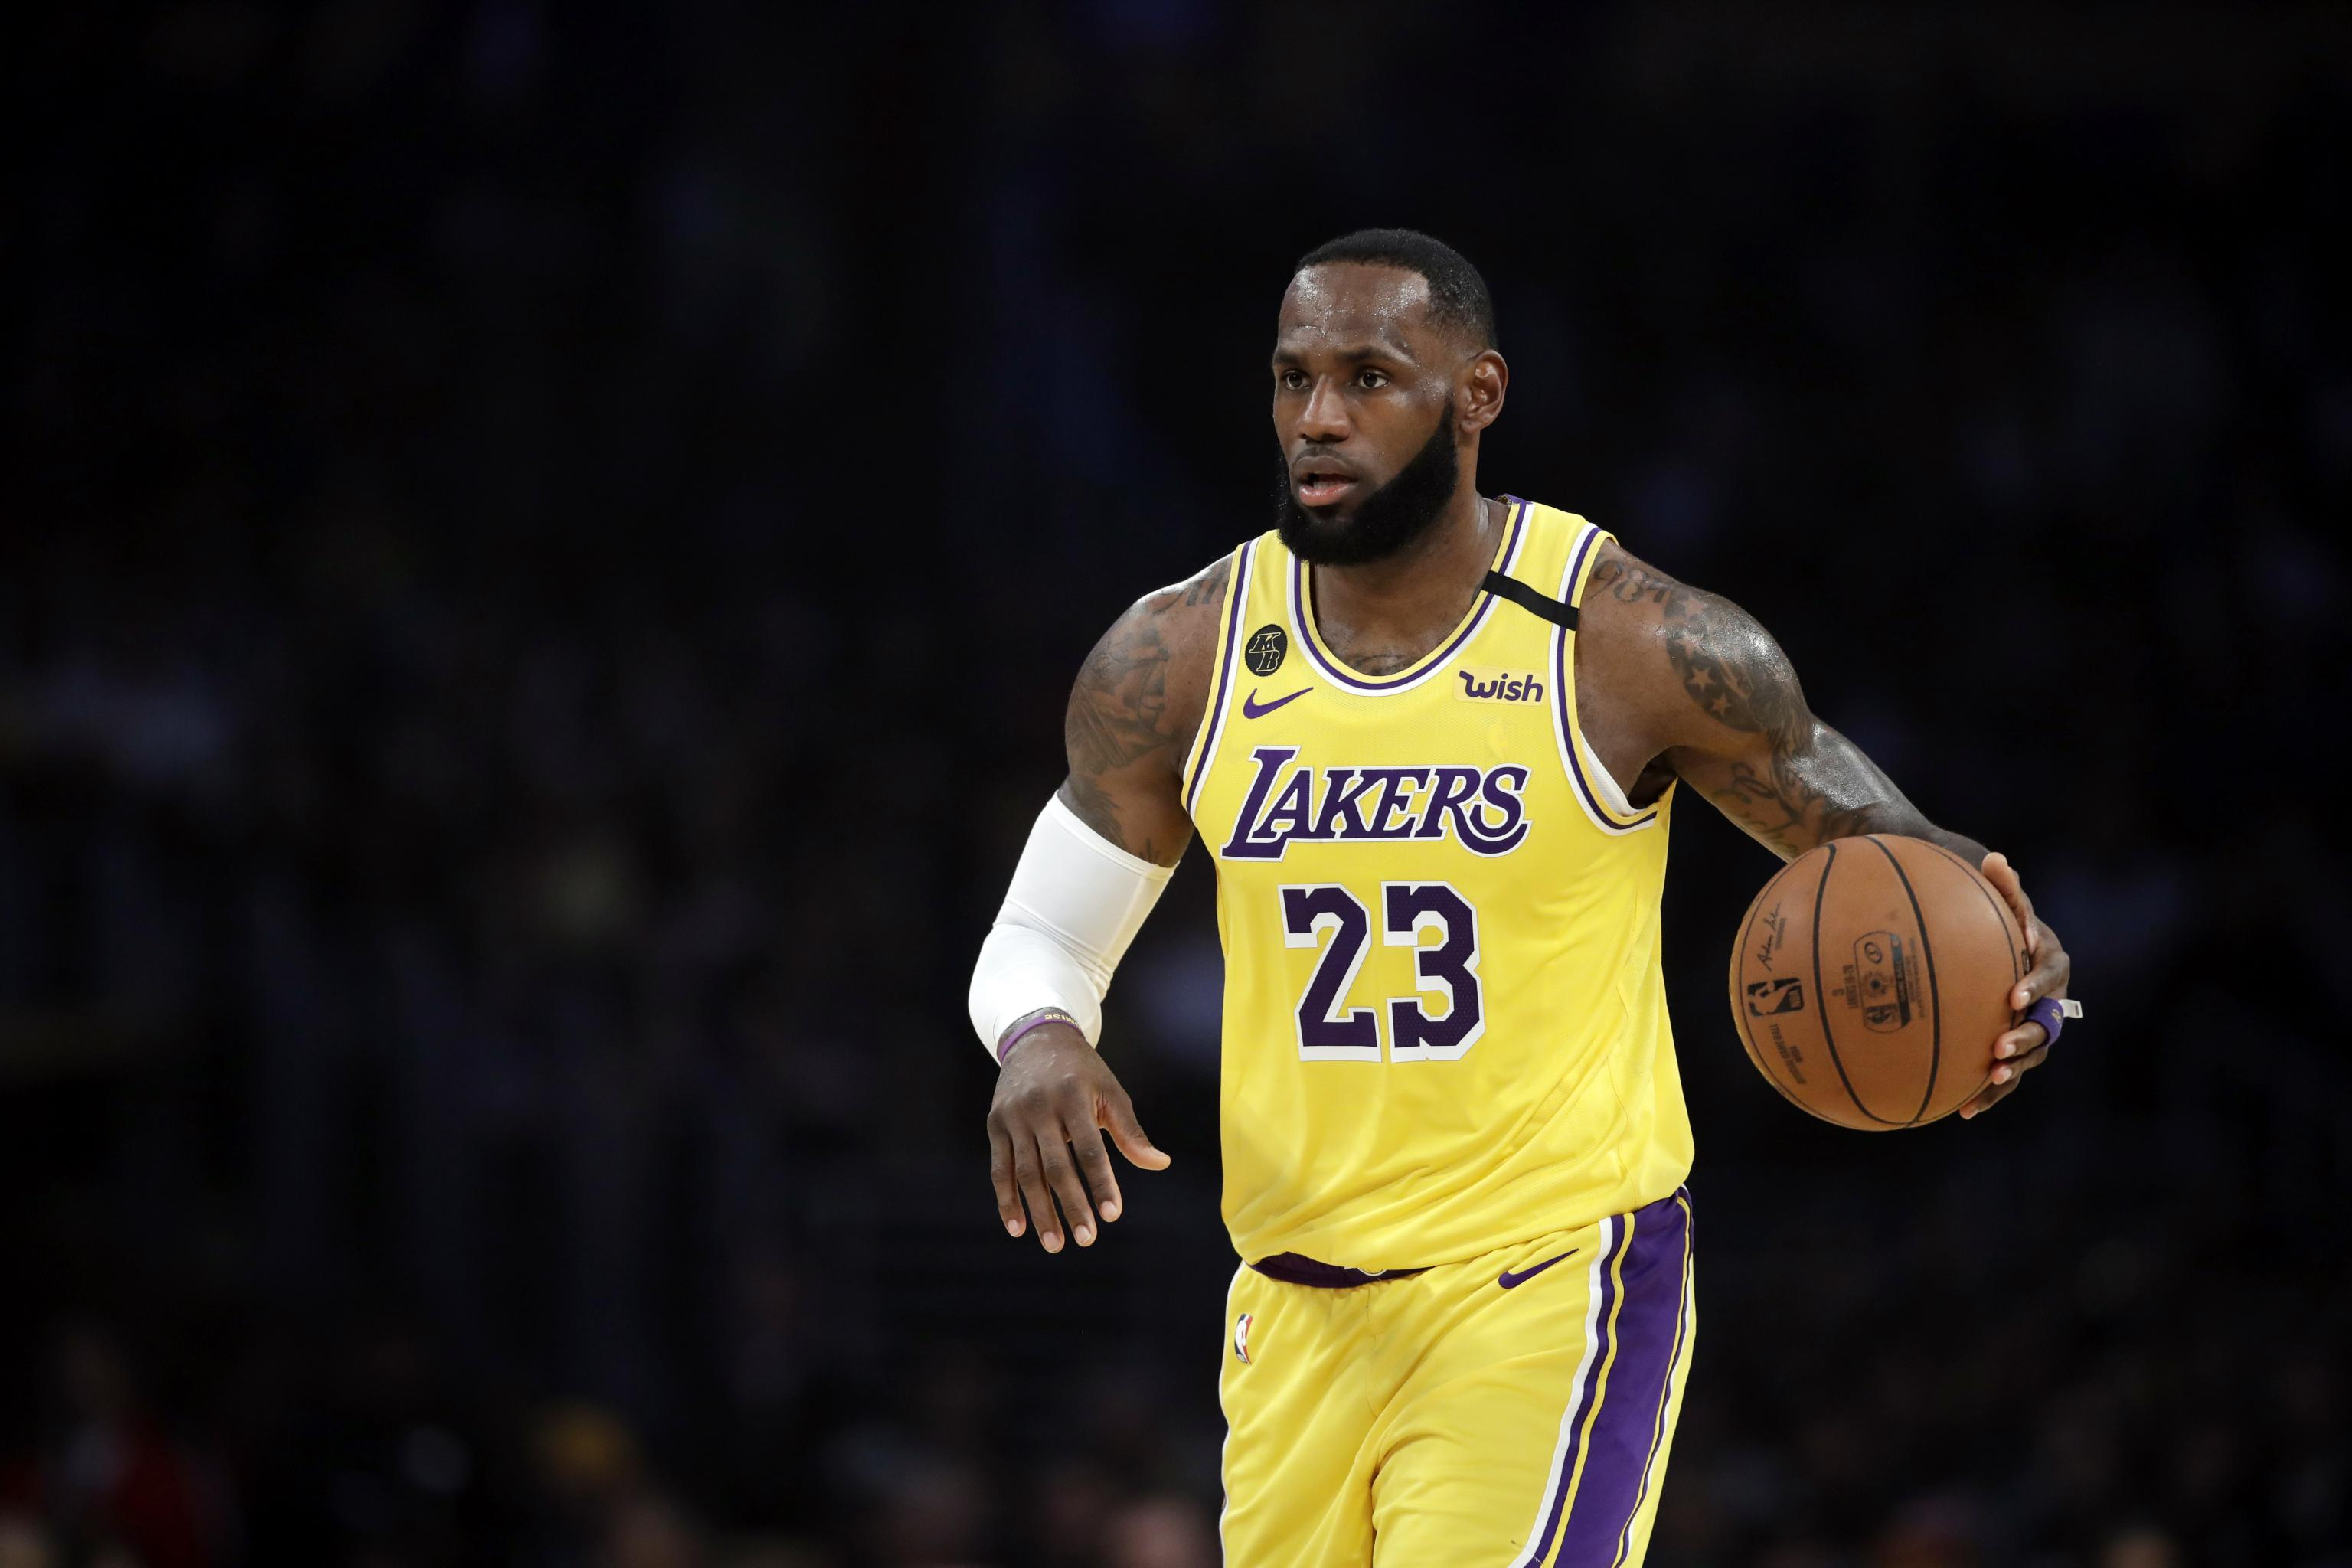 LeBron  James After NBA Suspends Season: 'What We Really Need to ...